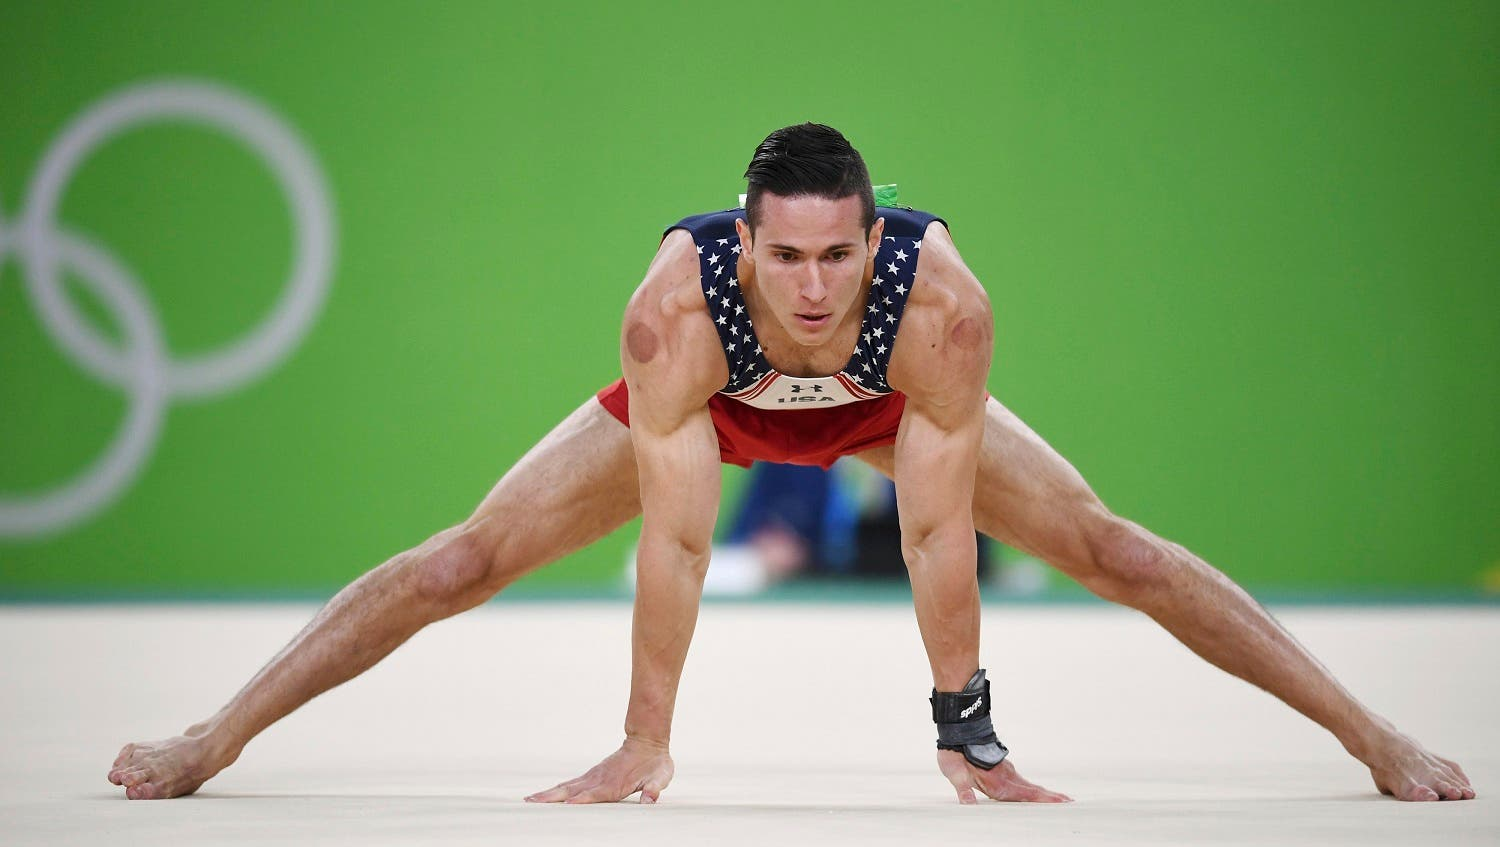 American gymnast Alexander Naddour, who has Lebanese ancestry, is also known to use cupping therapy before competing. (Reuters)